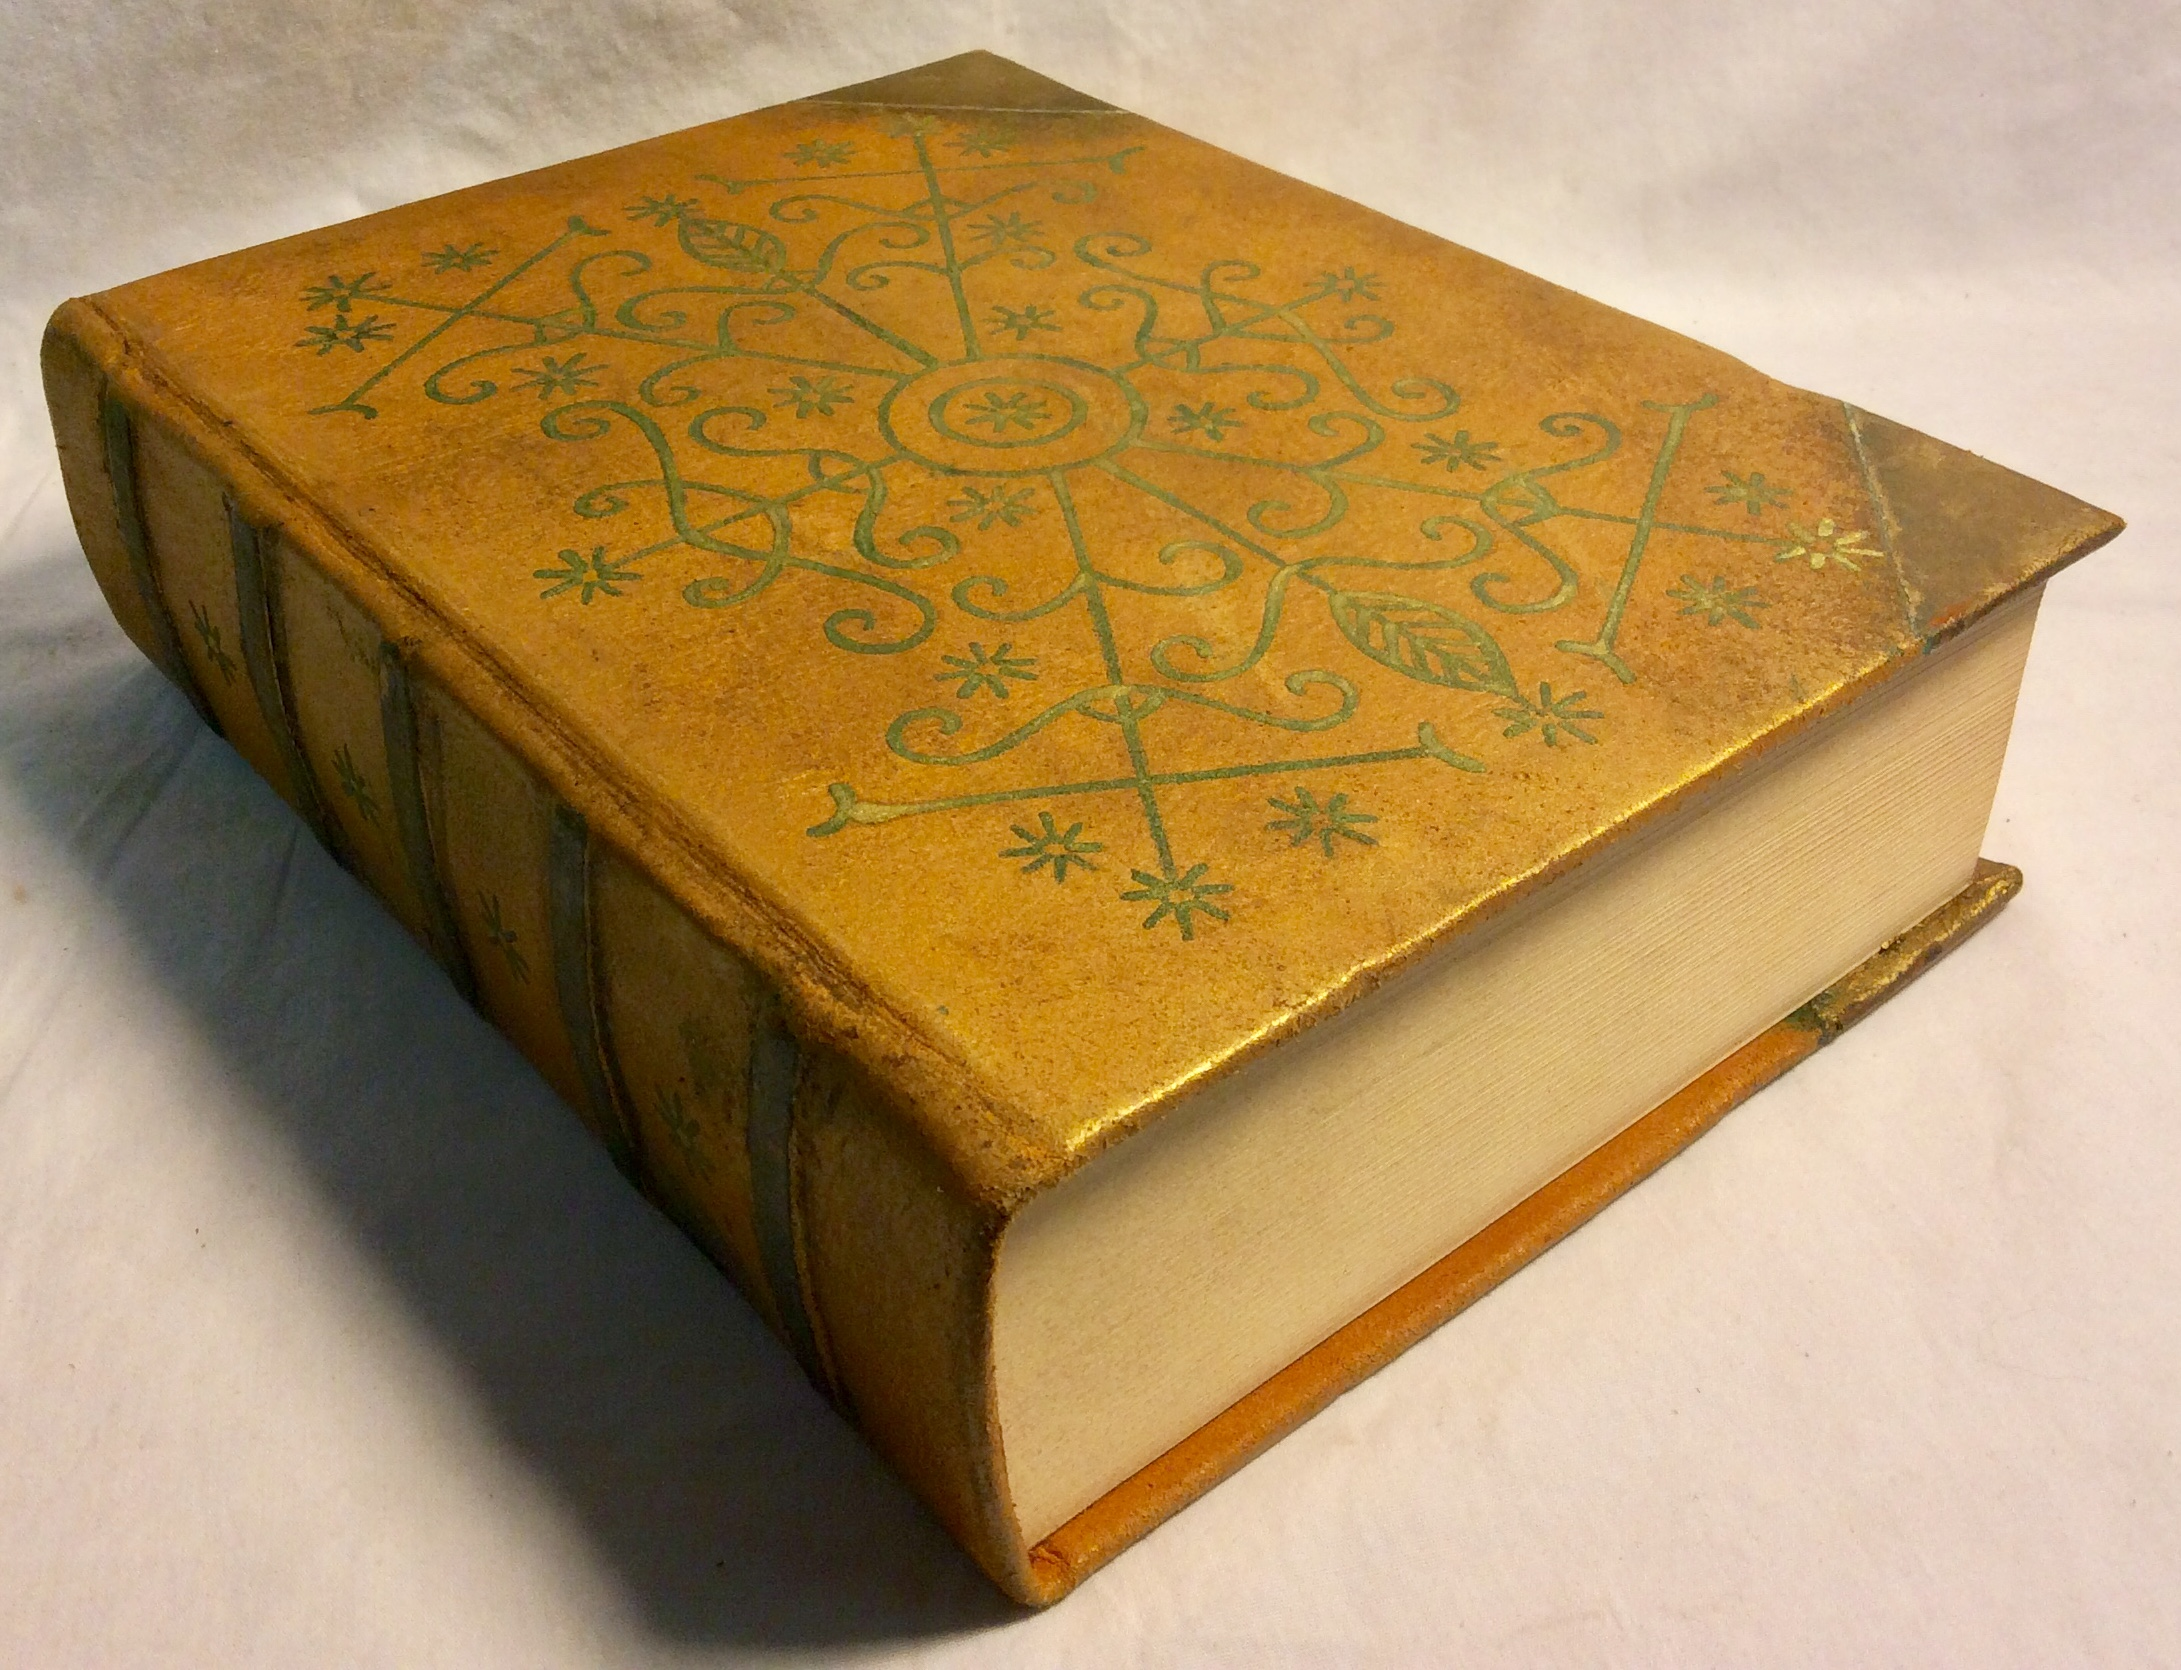 Gold detailed, hardcover magic book with built pages